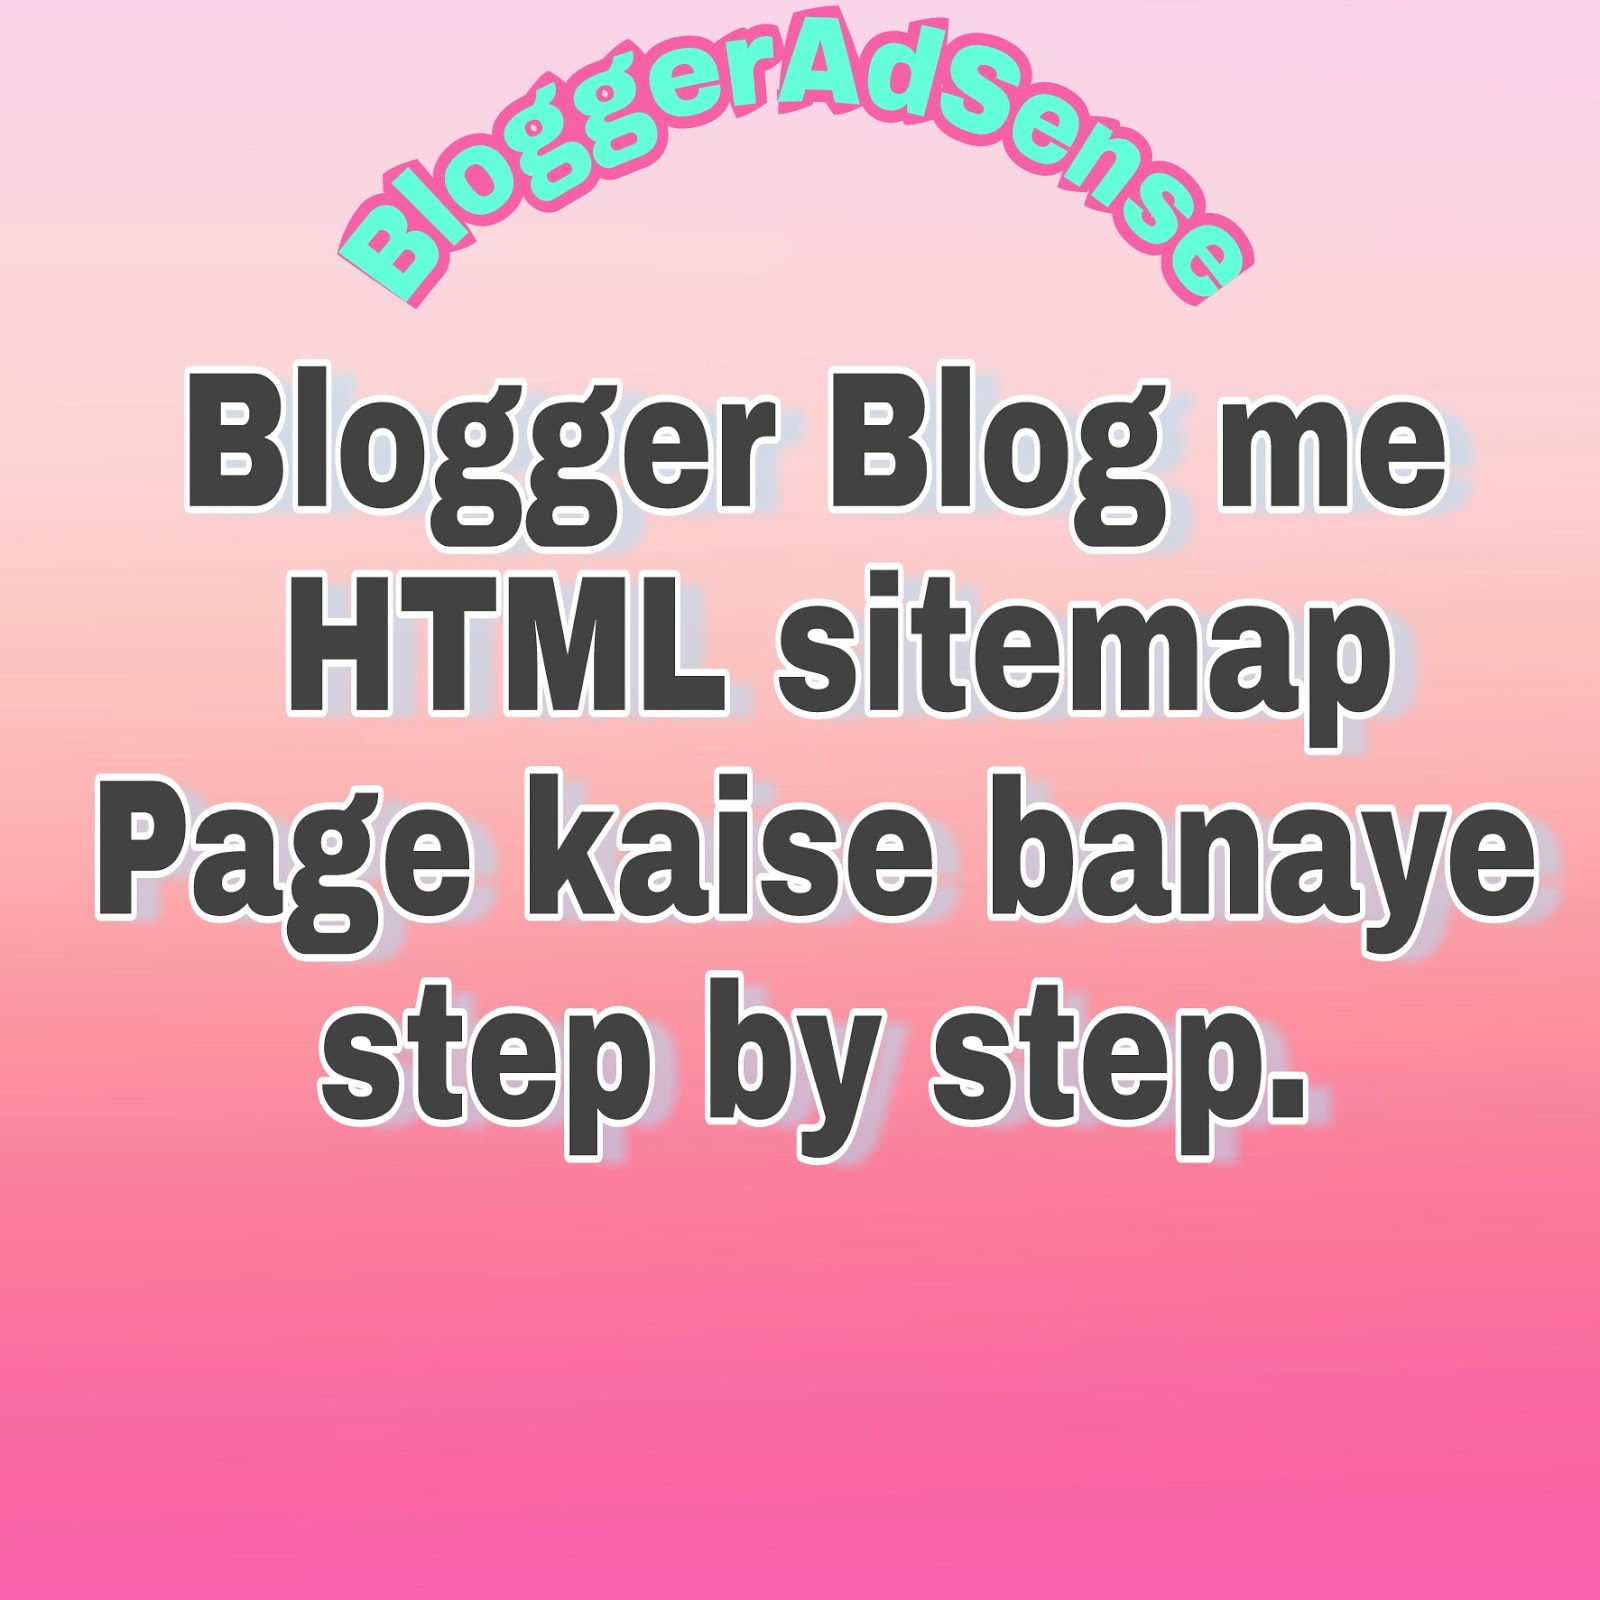 Create-html-sitemap-in-blogger